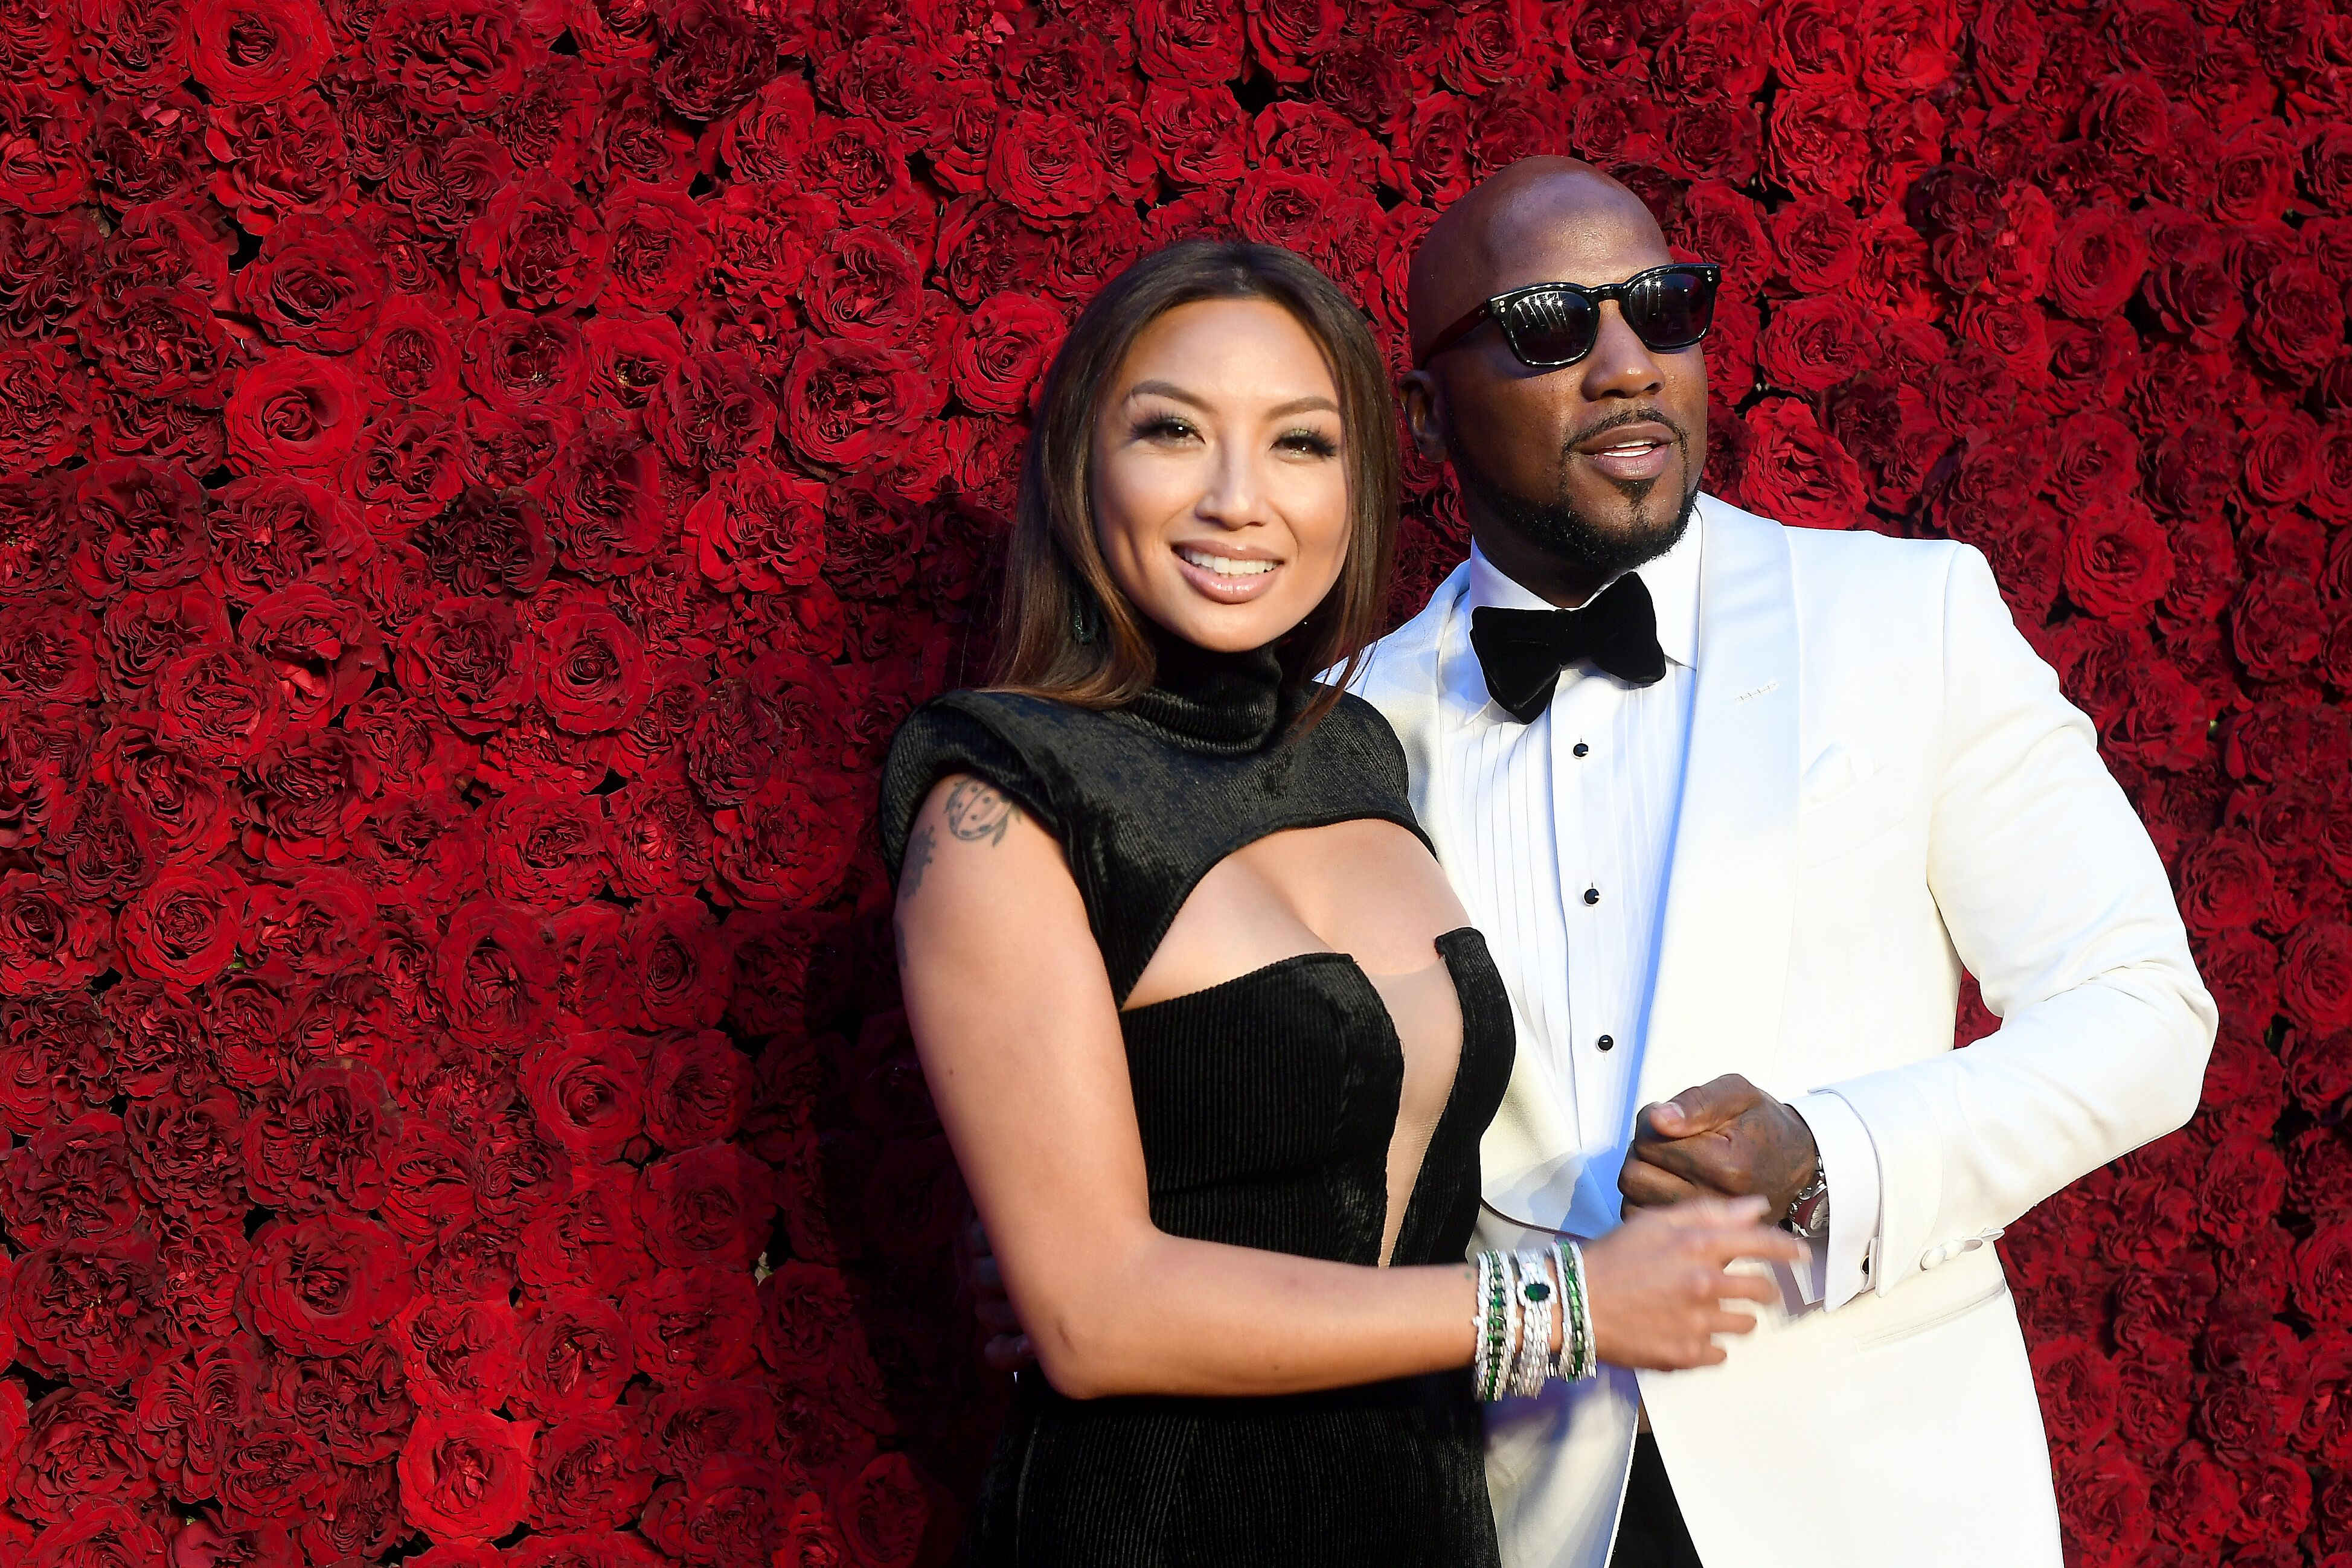 Jeezy and Jeannie Mai attend the Grand Opening Gala of Tyler Perry Studios in October 2019 | Source: Getty Images/GlobalImagesUkraine